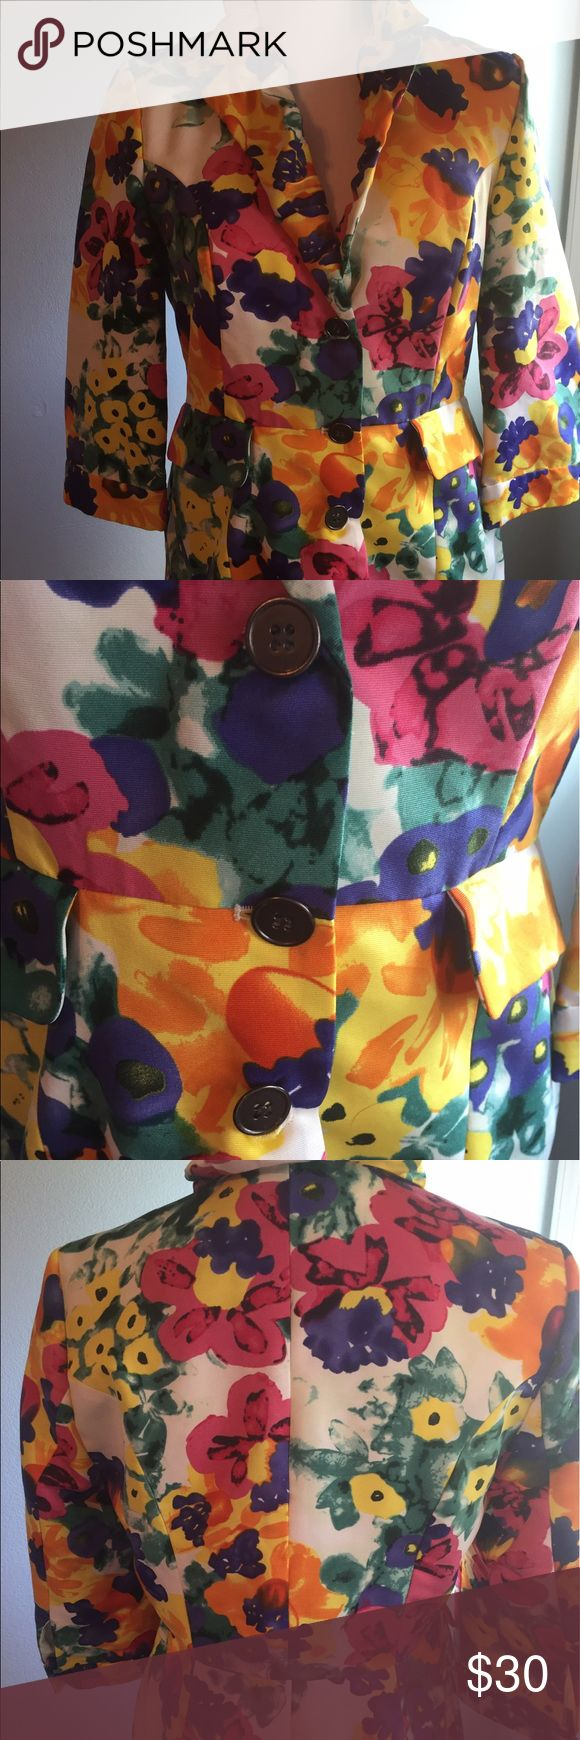 """Walter by Walter baker Floral blazer size 8 This Walter by Walter baker blazer is a size 8 . It measures armpit to armpit 18"""" the length is 22"""" . It is in good condition no stains or holes Walter Baker Jackets & Coats Blazers"""